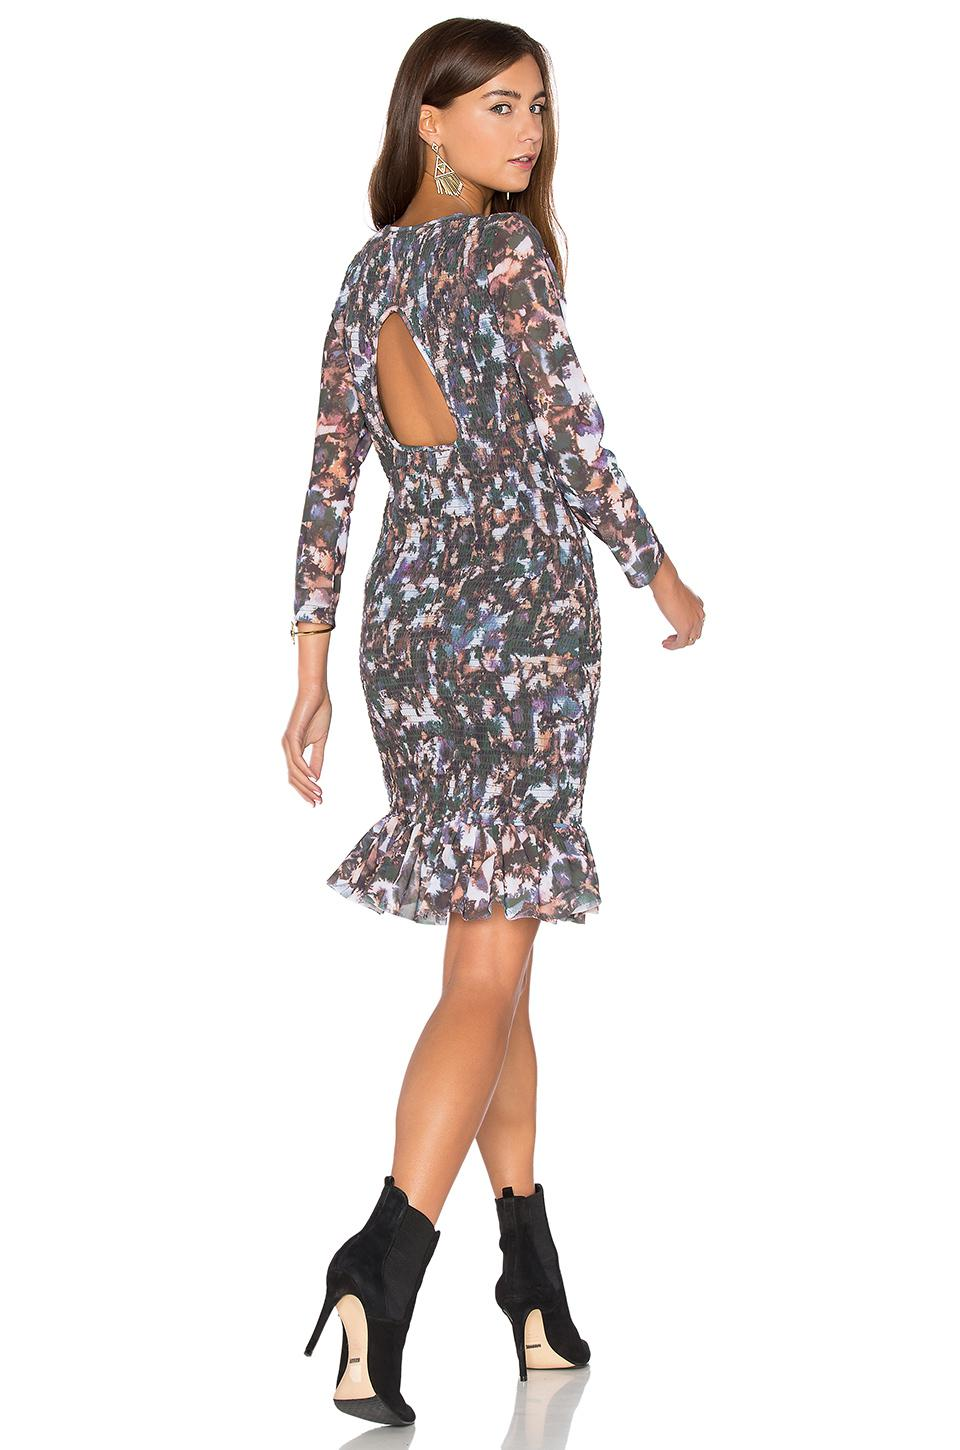 a0bd67ed036 Lyst - Twelfth Street Cynthia Vincent Smocked Flounce Dress in Black